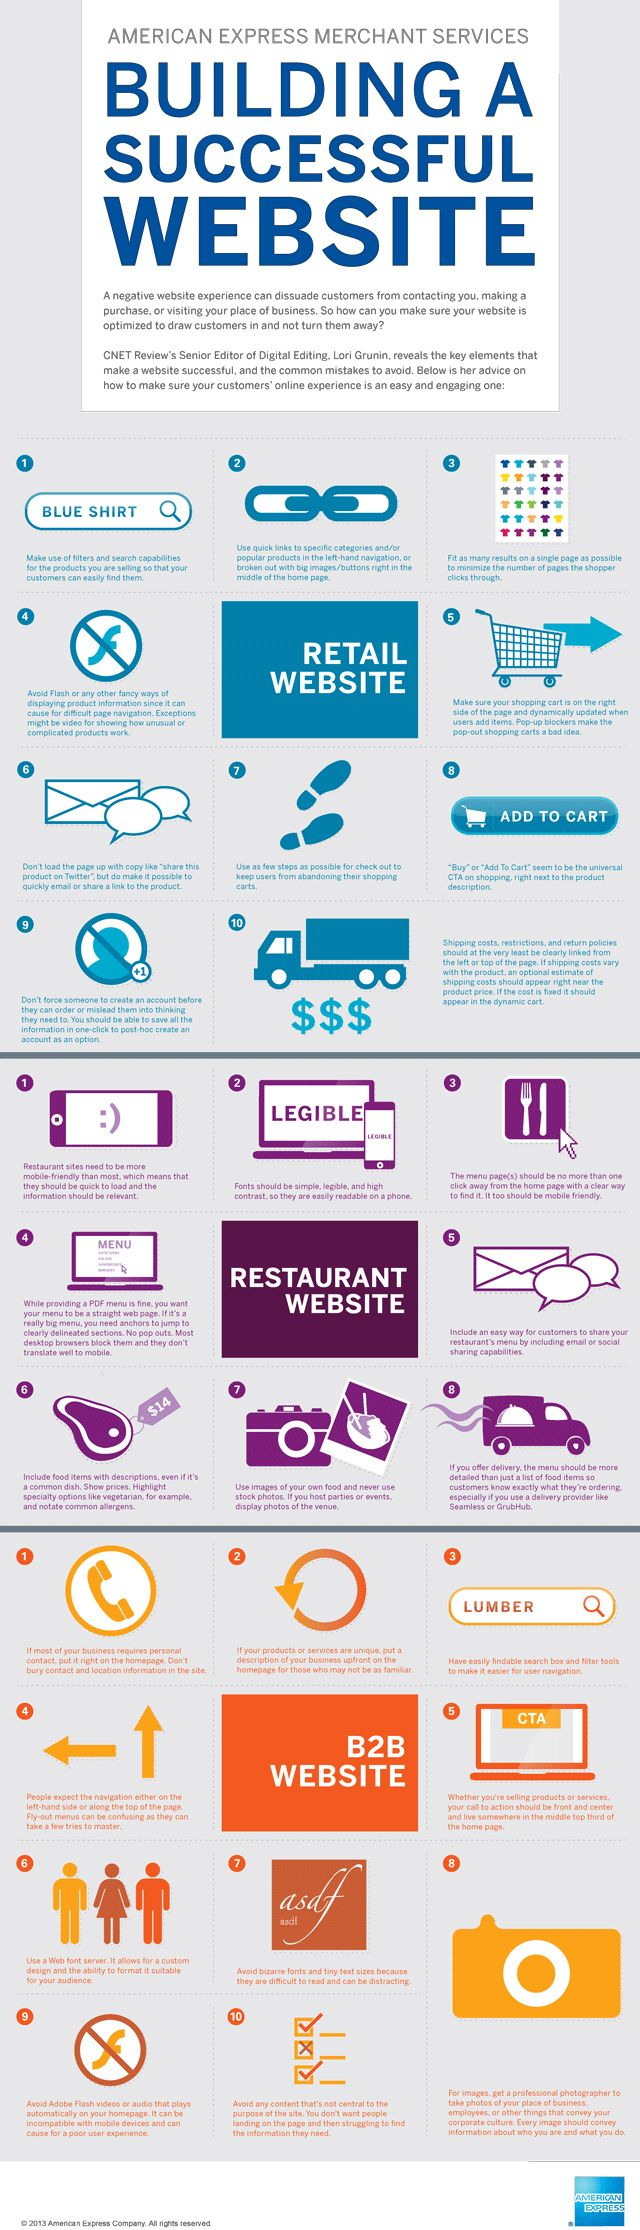 26 Tips for a More Successful Business Website #Infographic